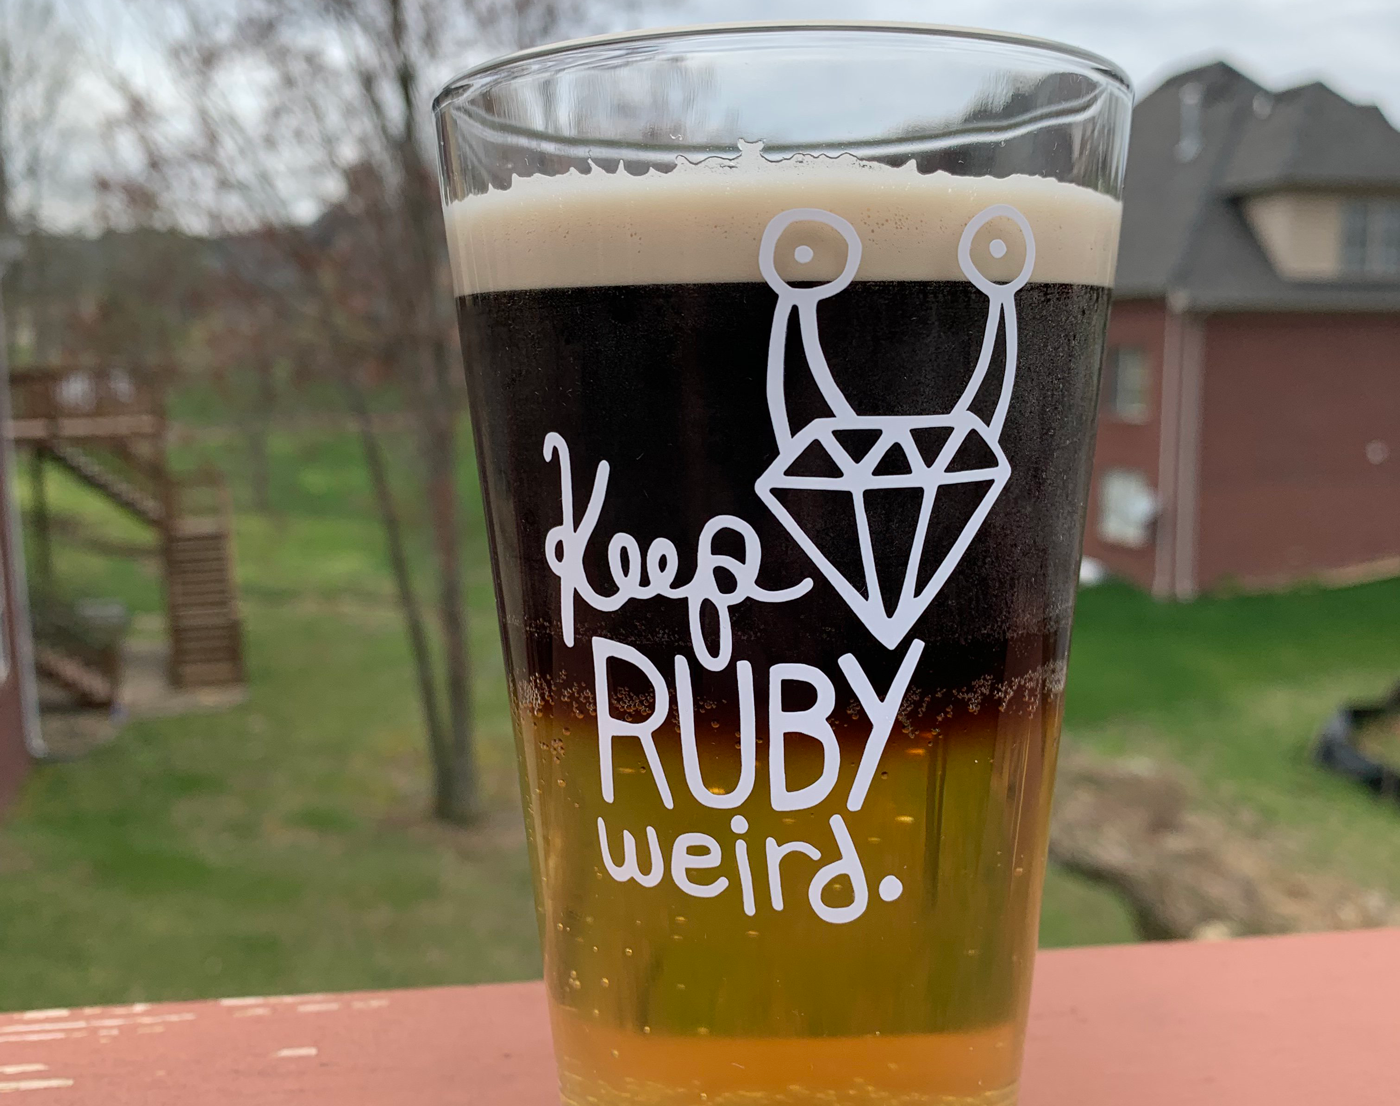 Keep Ruby Weird logo on a glass full of beer